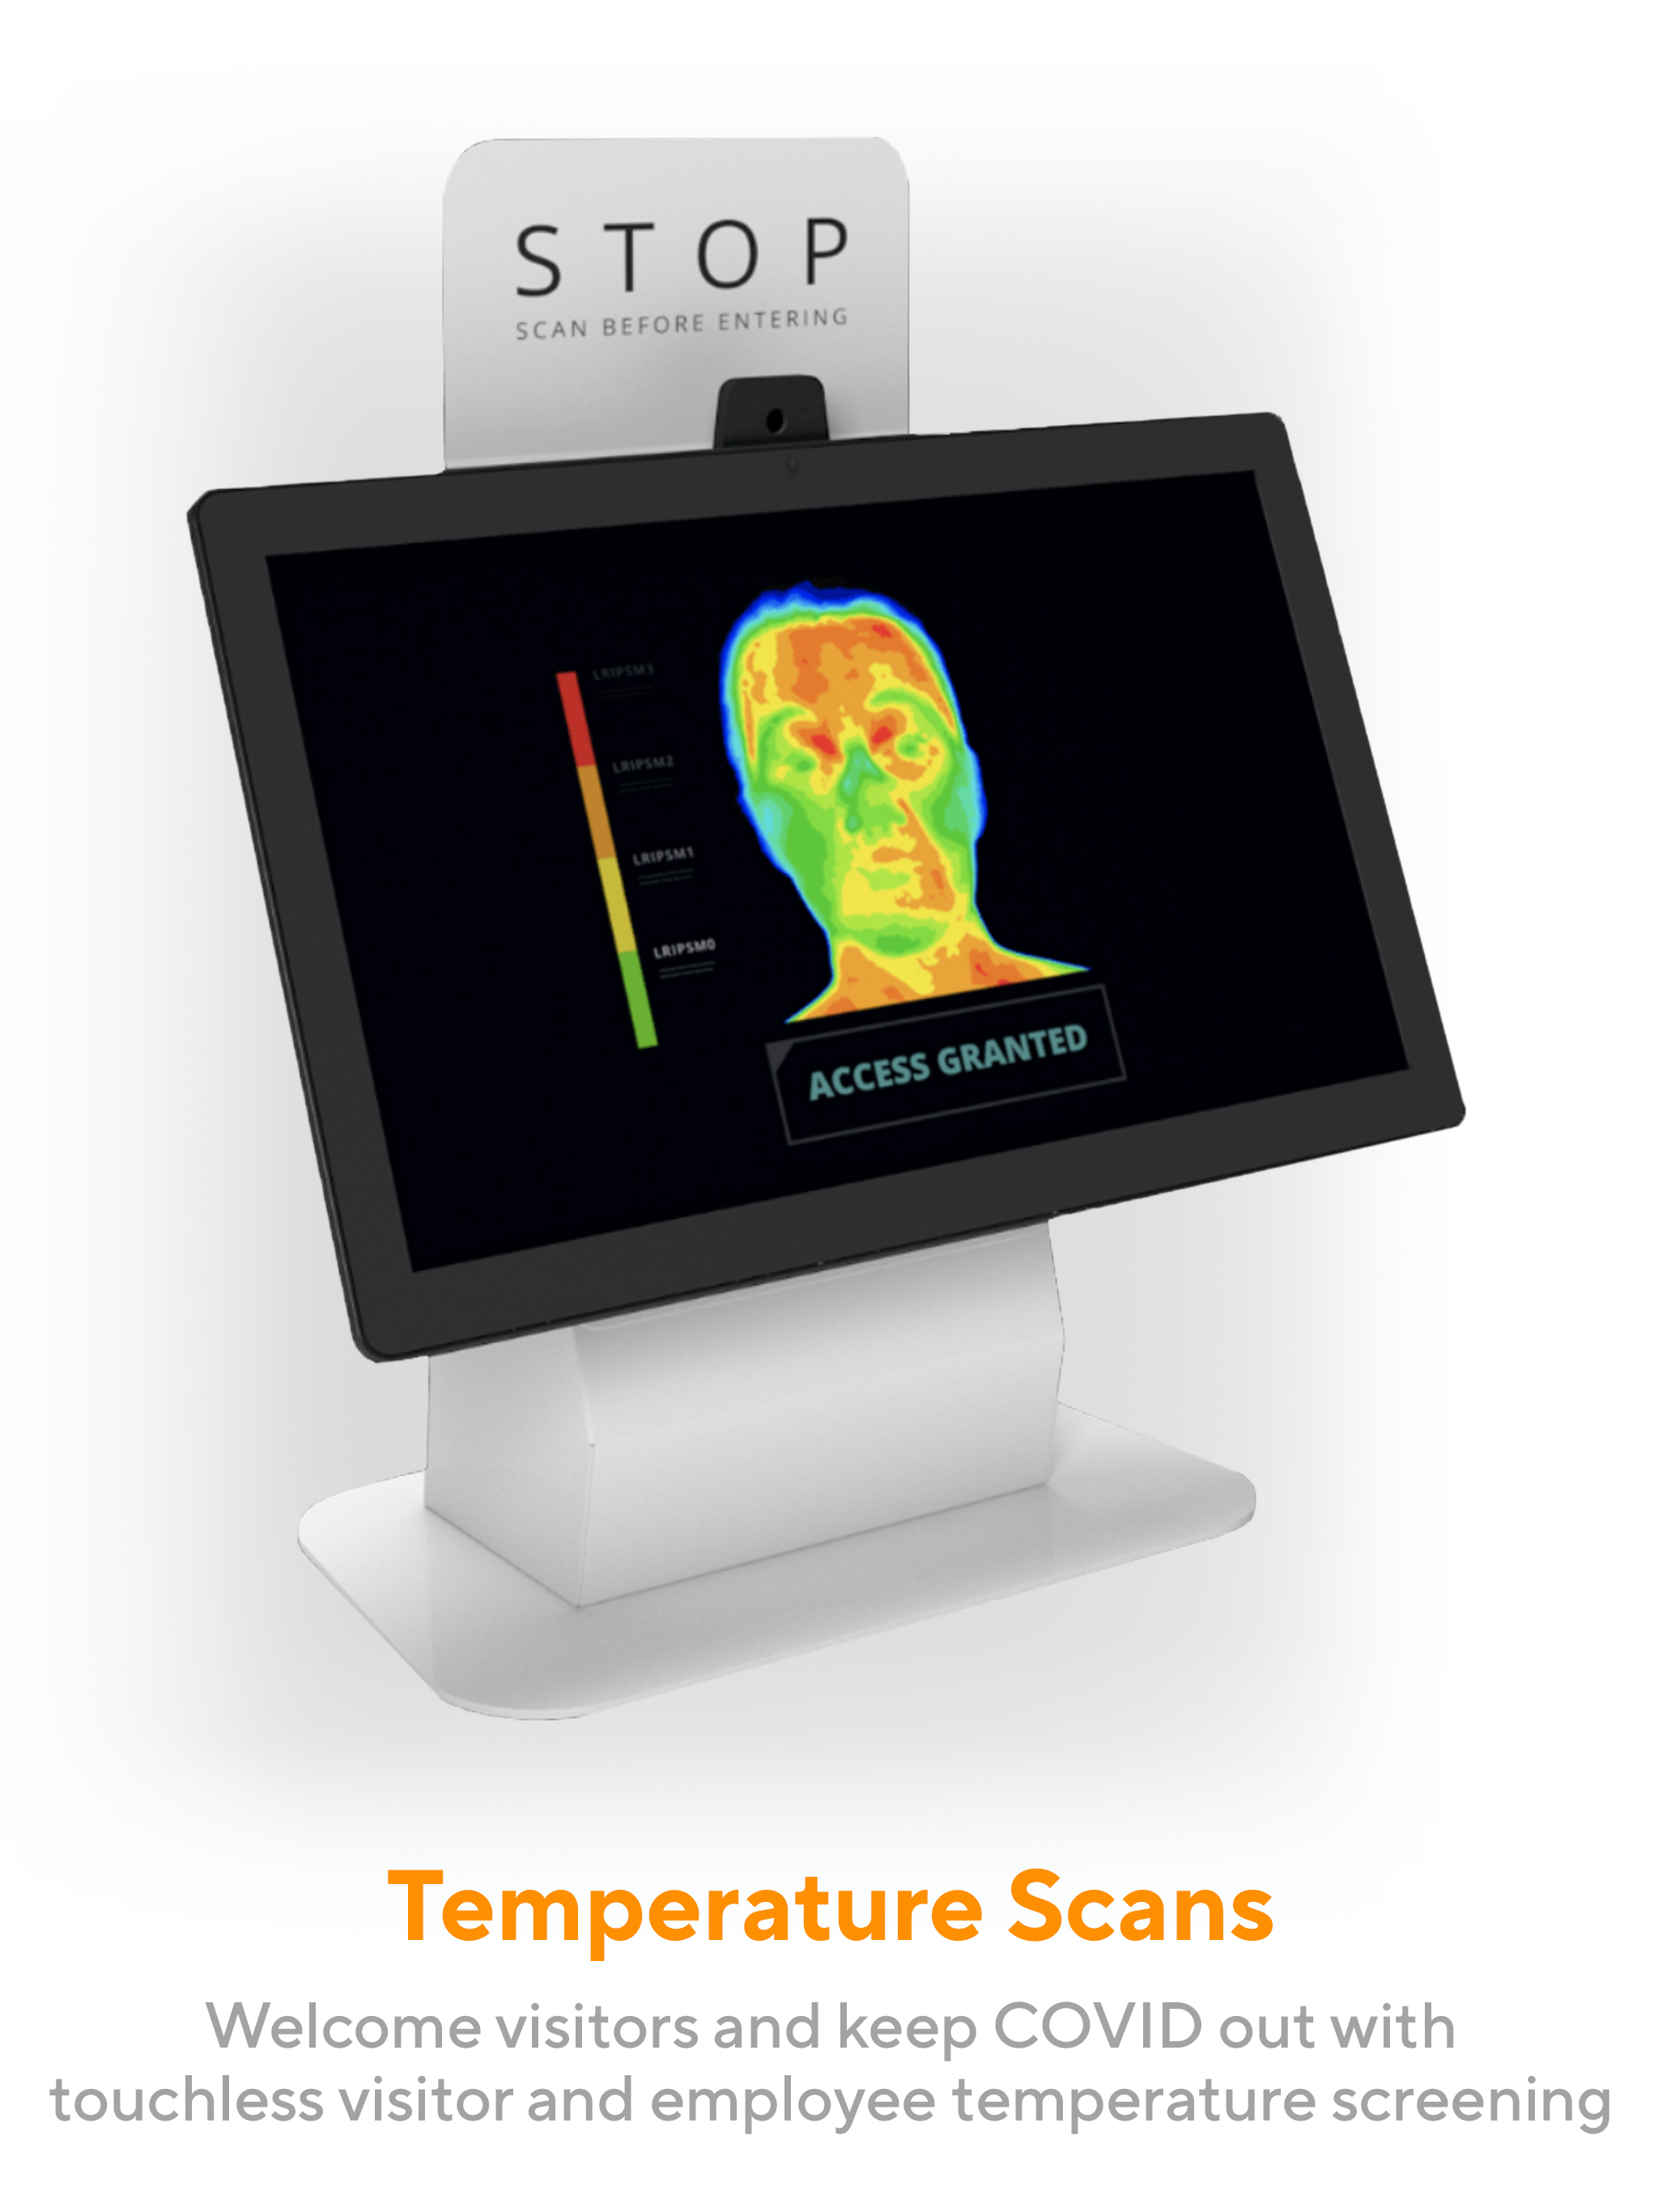 Keep your workplace safe from COVID and other illnesses. In addition to no-touch visitor check-in, Greetly offers thermal temperature scans to ensure visitors and employees meet your health and safety protocols before entering.